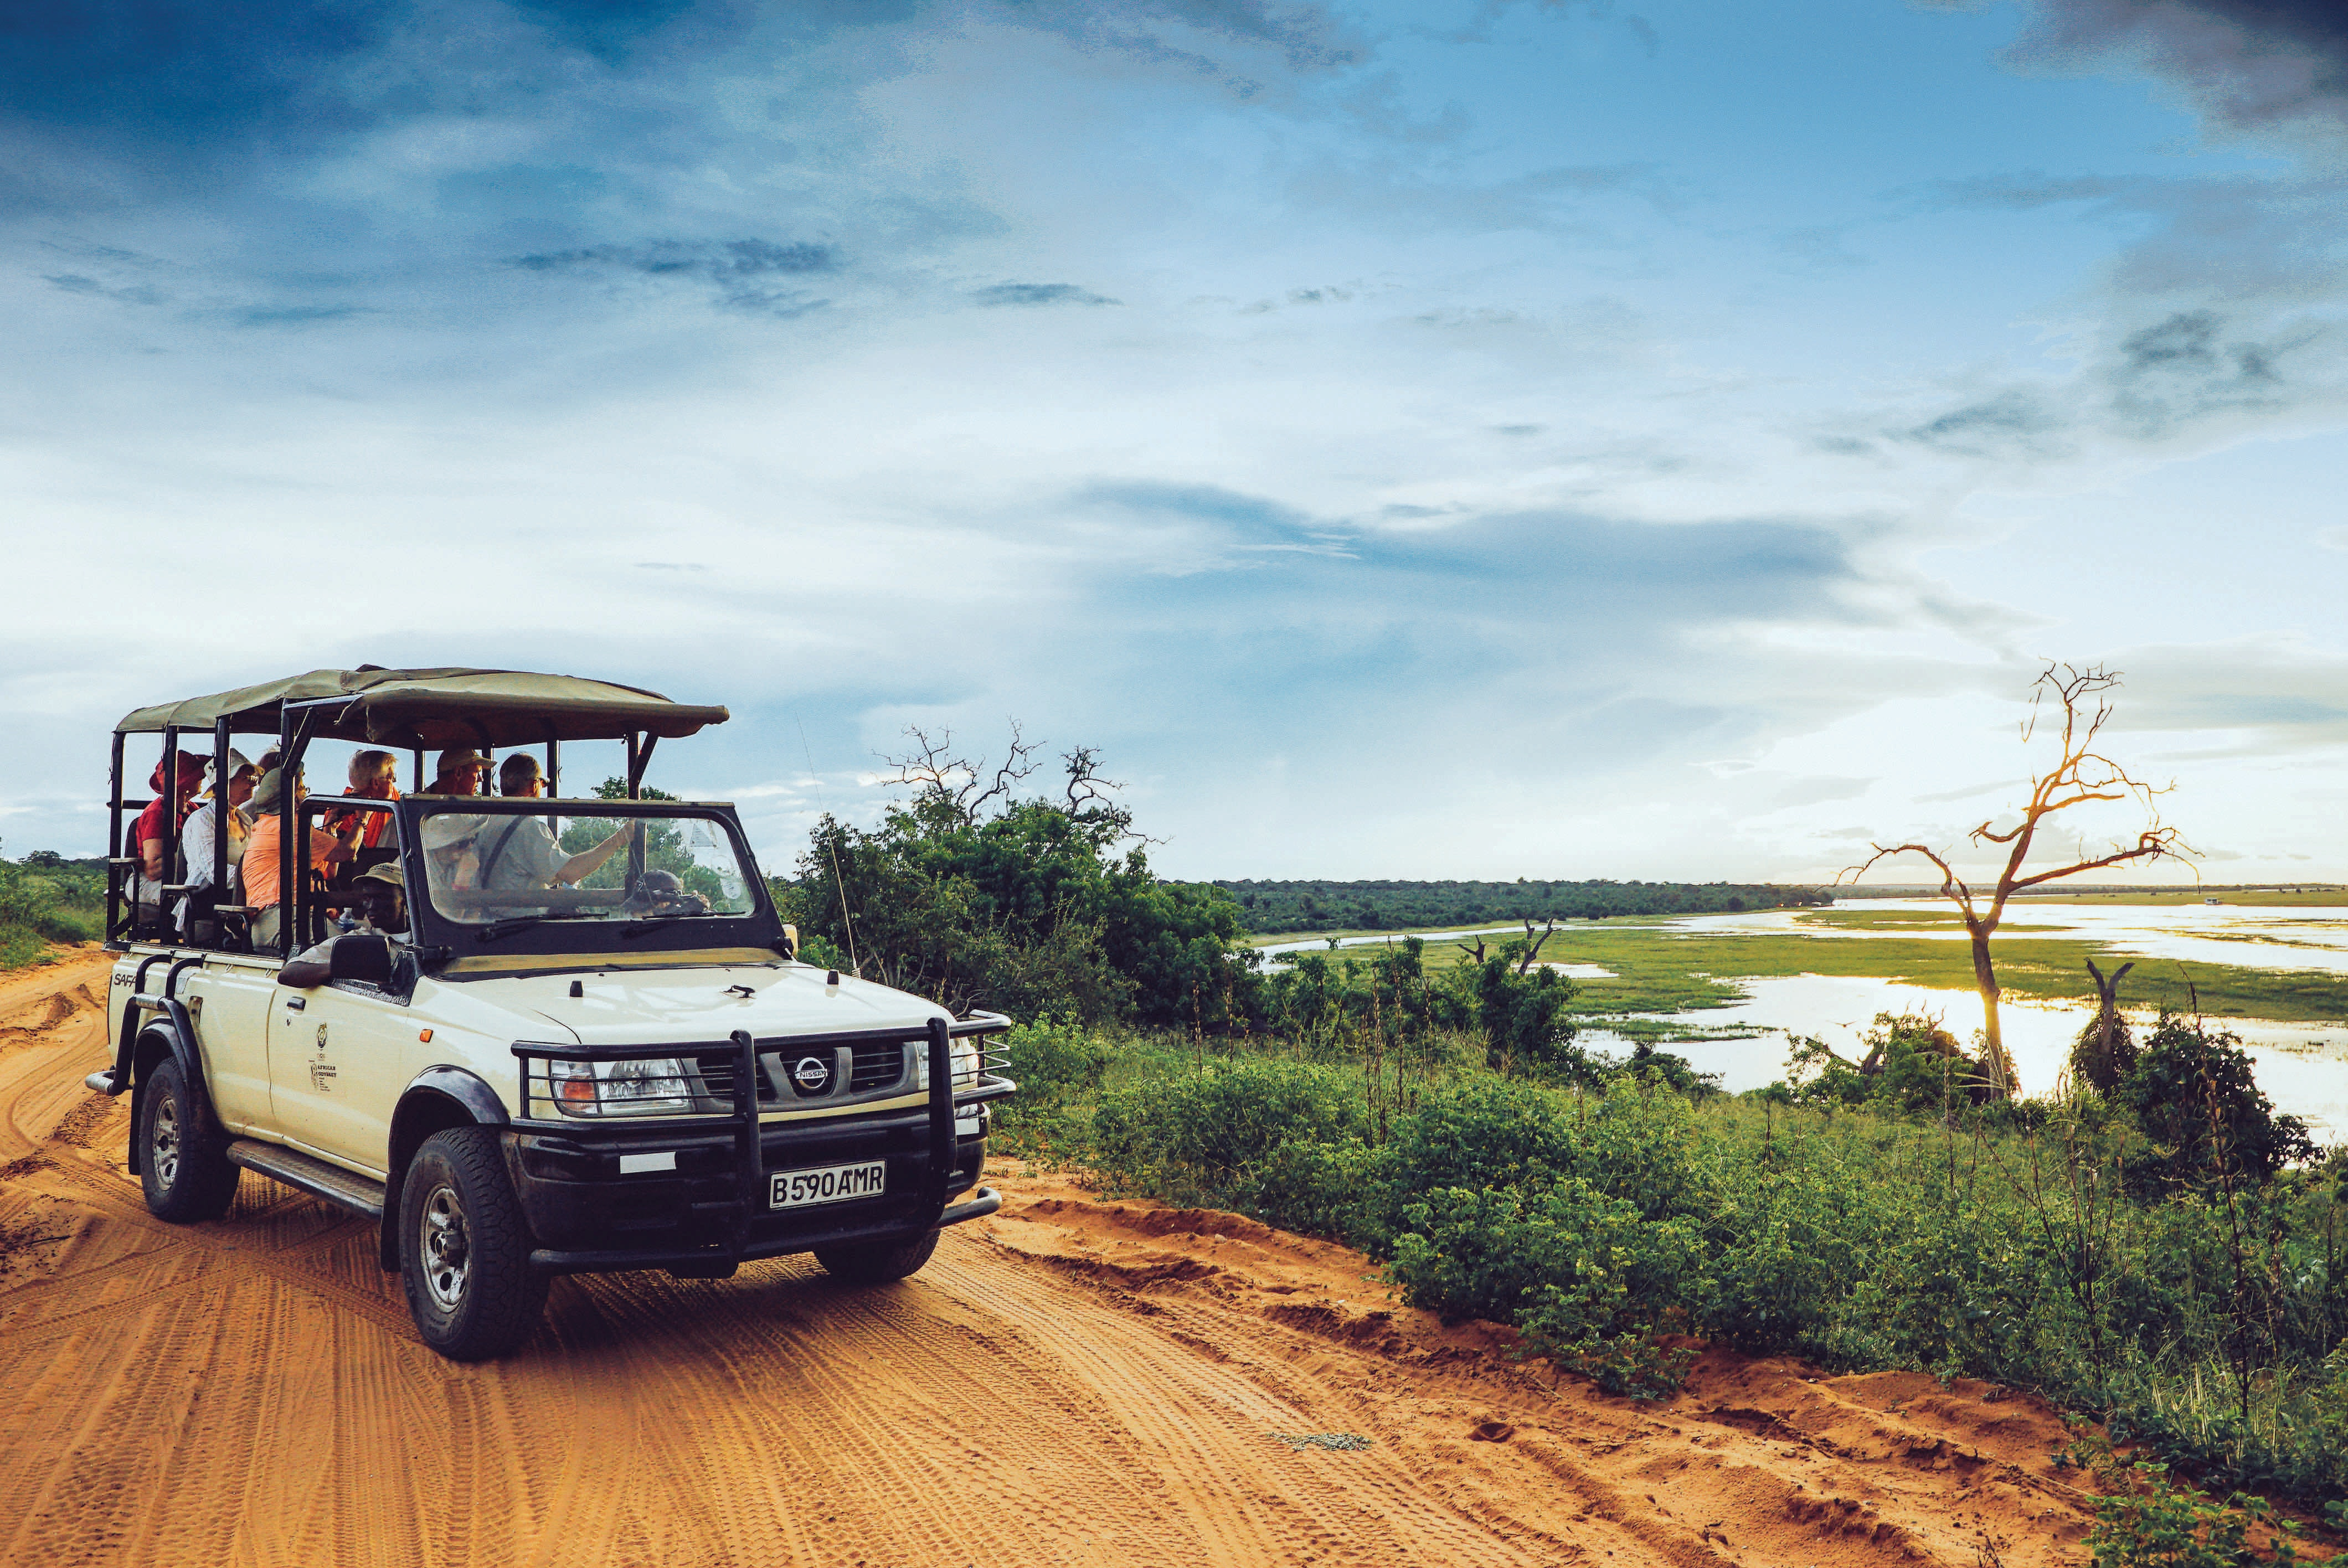 Explorations guests searching for wildlife during a game drive at South Africa